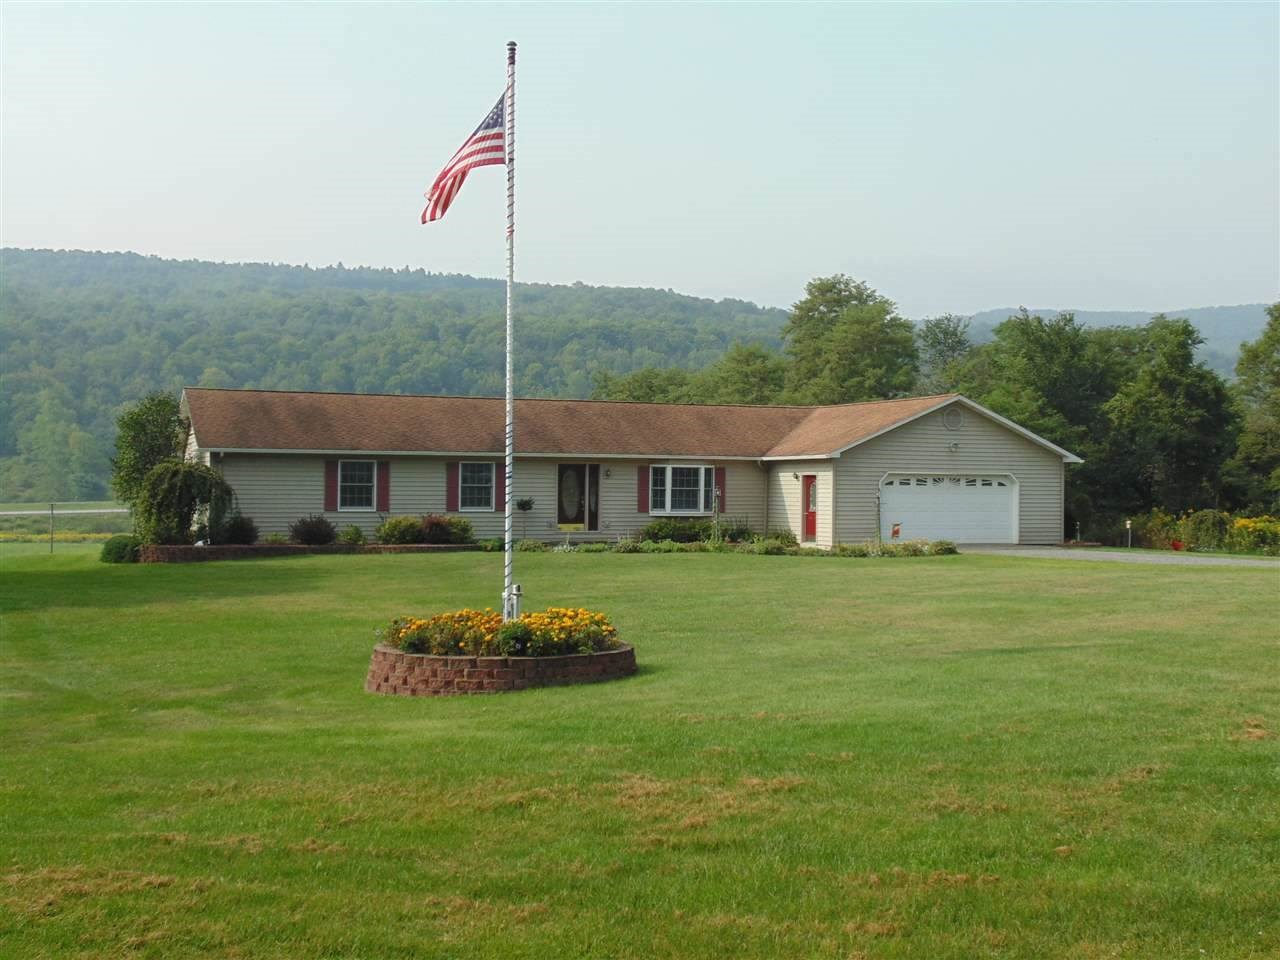 344 STATE ROUTE 7, Richmondville, NY 12149